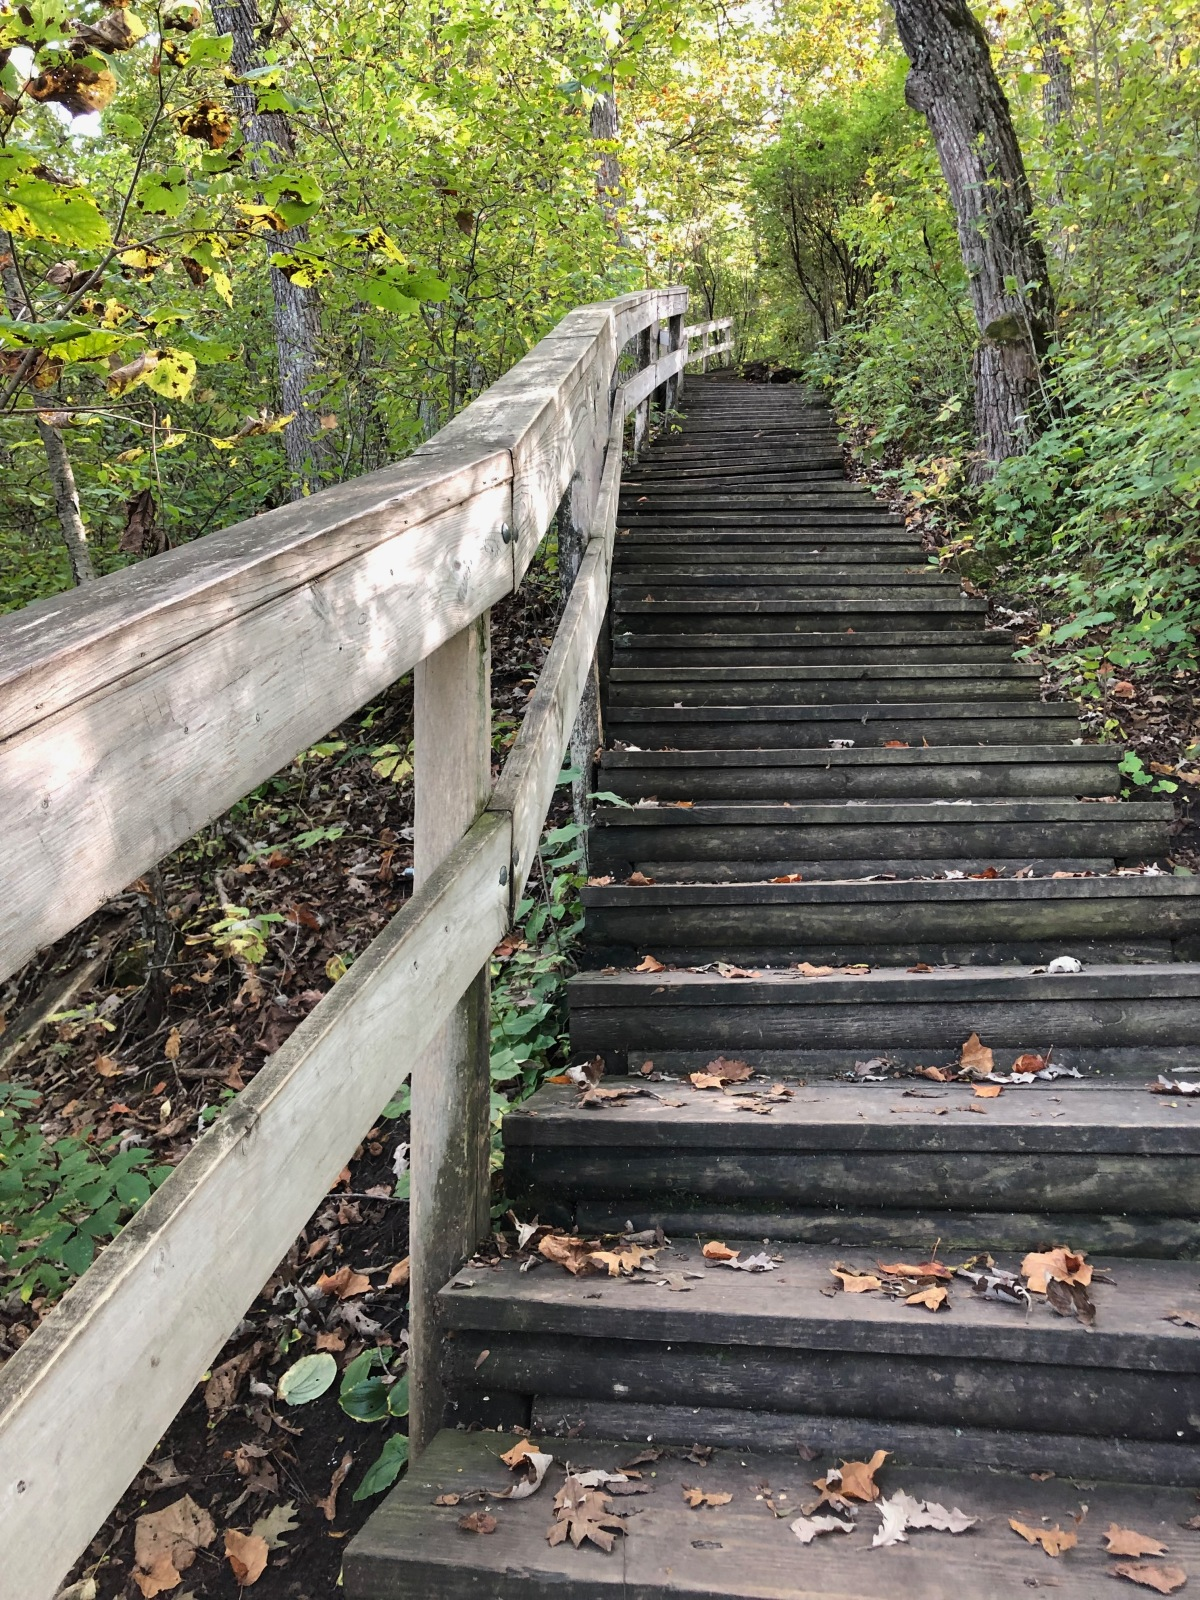 The steps to the Fire Tower